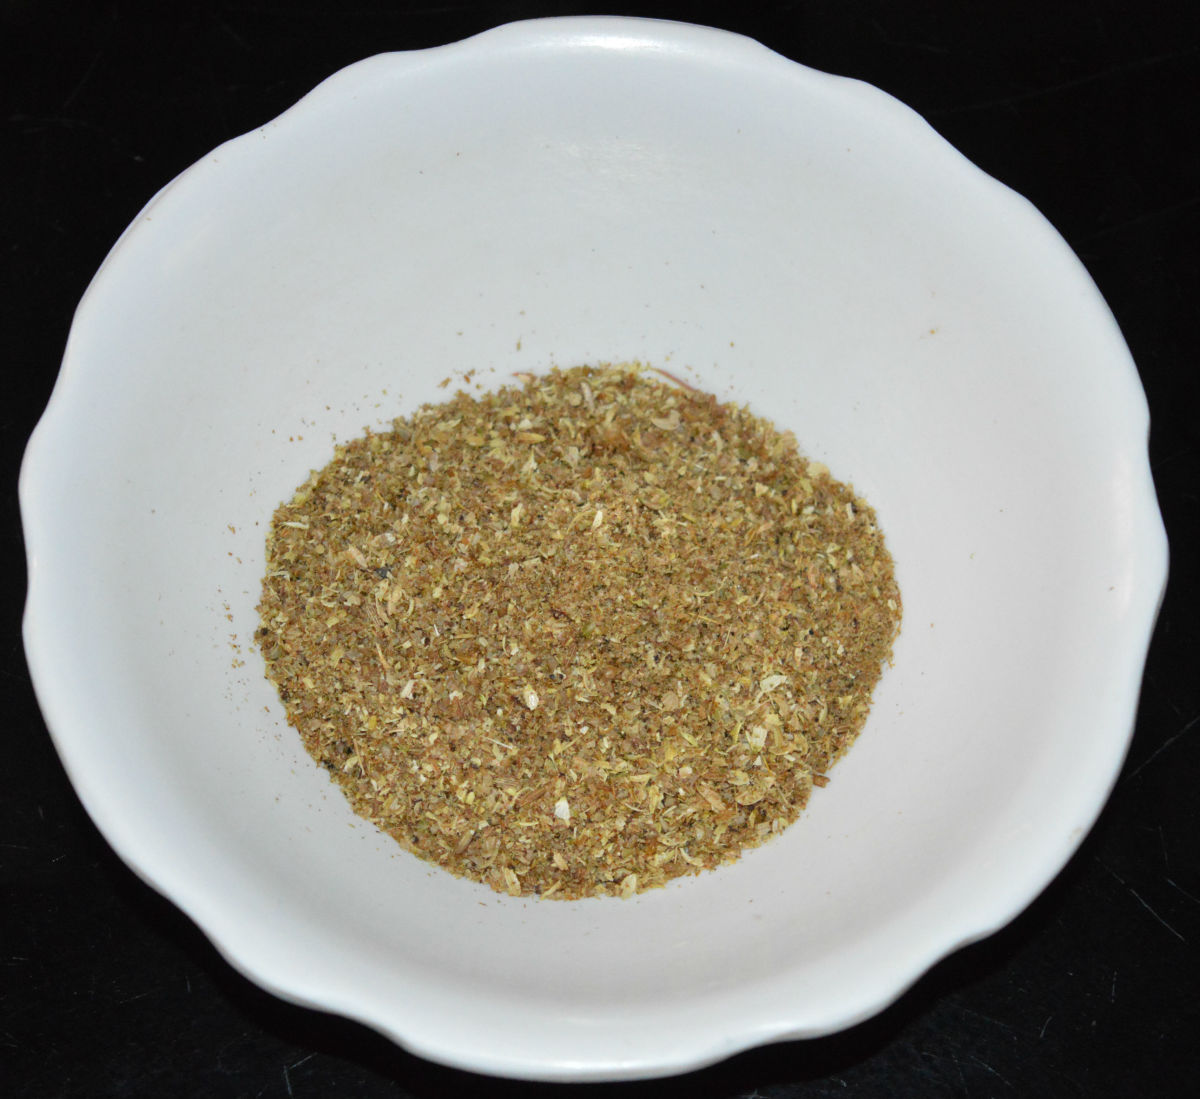 Powdered dry spices